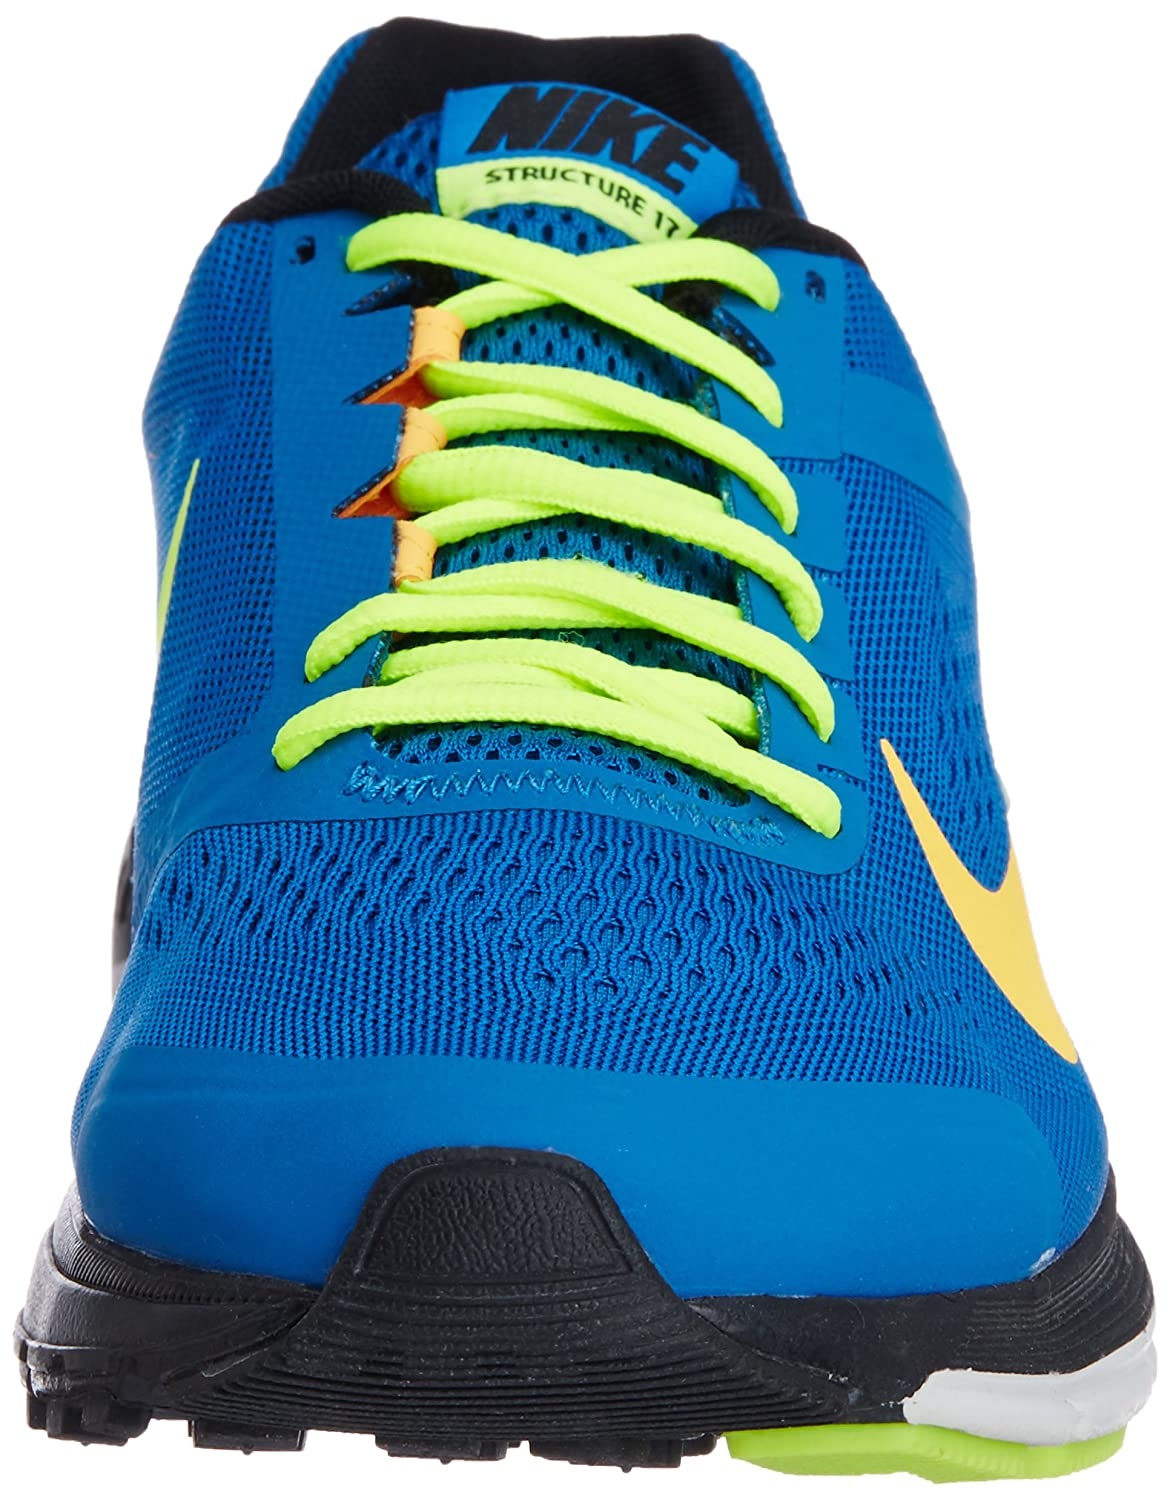 404a0d9f7962 Nike Men s Zoom Structure+ 17 Military Blue